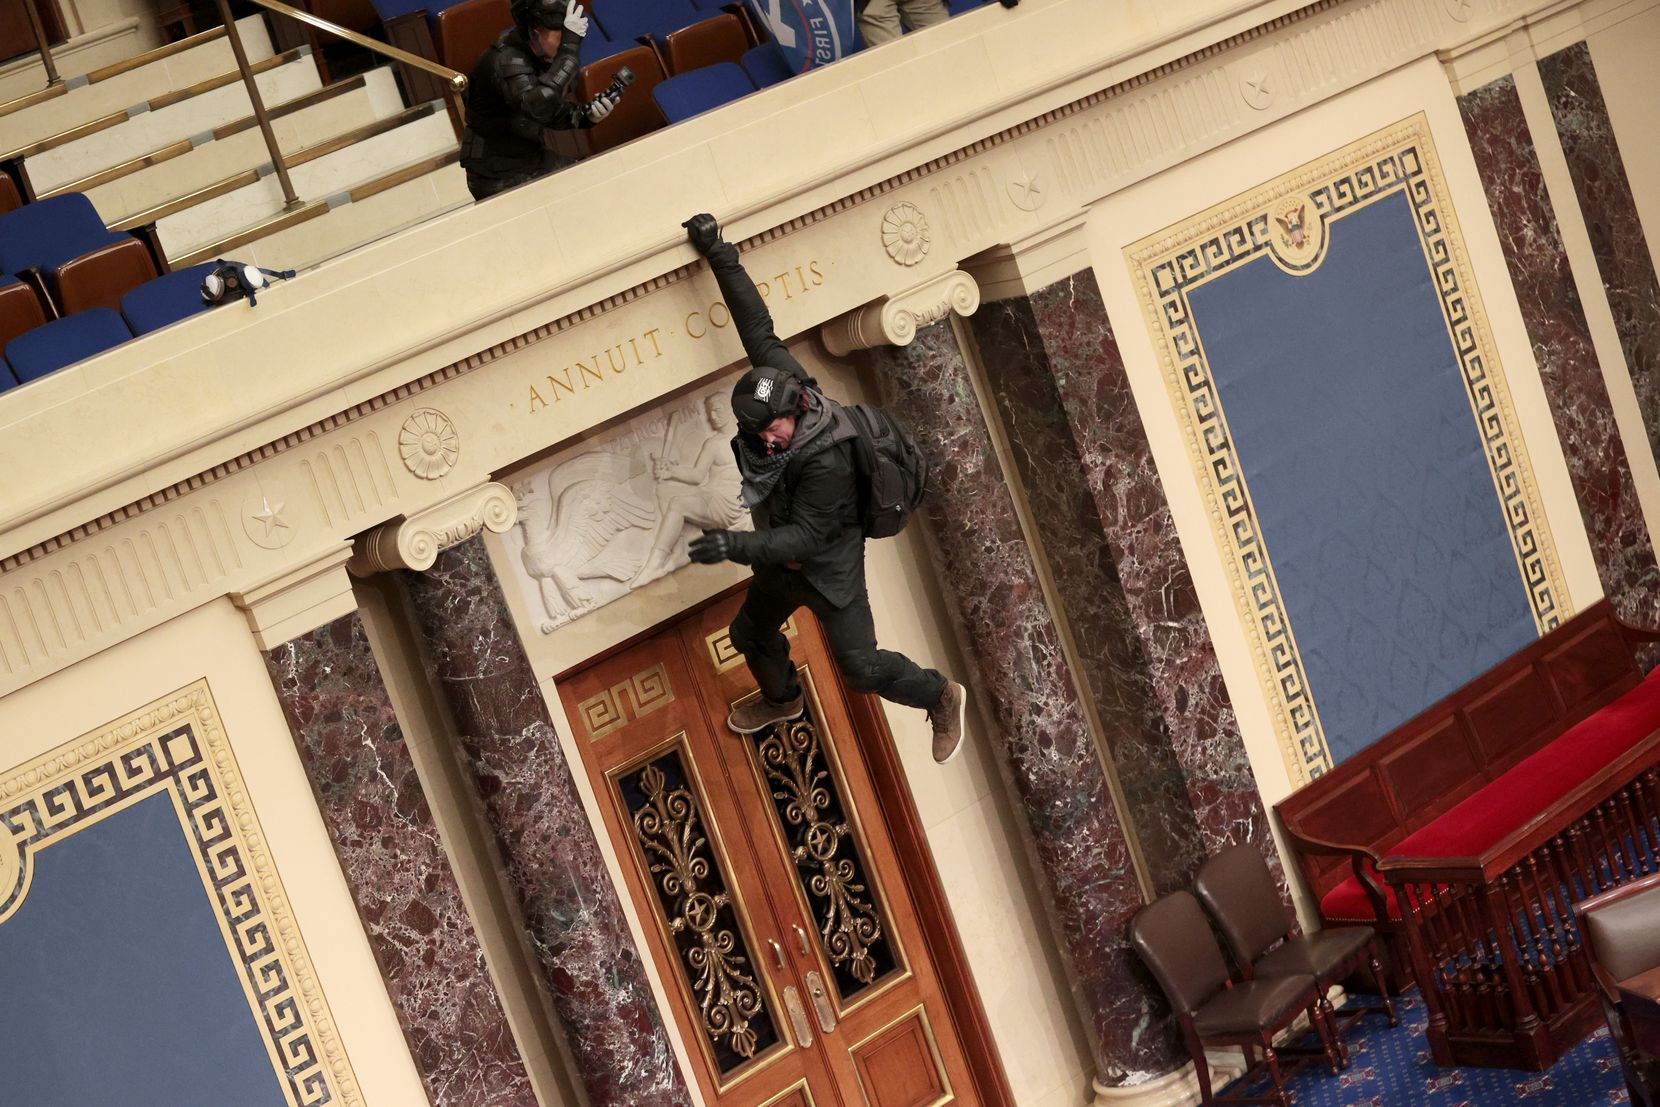 A protester hangs from the balcony in the Senate Chamber on January 6, 2021, as a mob overruns the Capitol, interrupted a joint session of Congress that later ratified President-elect Joe Biden's 306-232 Electoral College win over President Donald Trump.